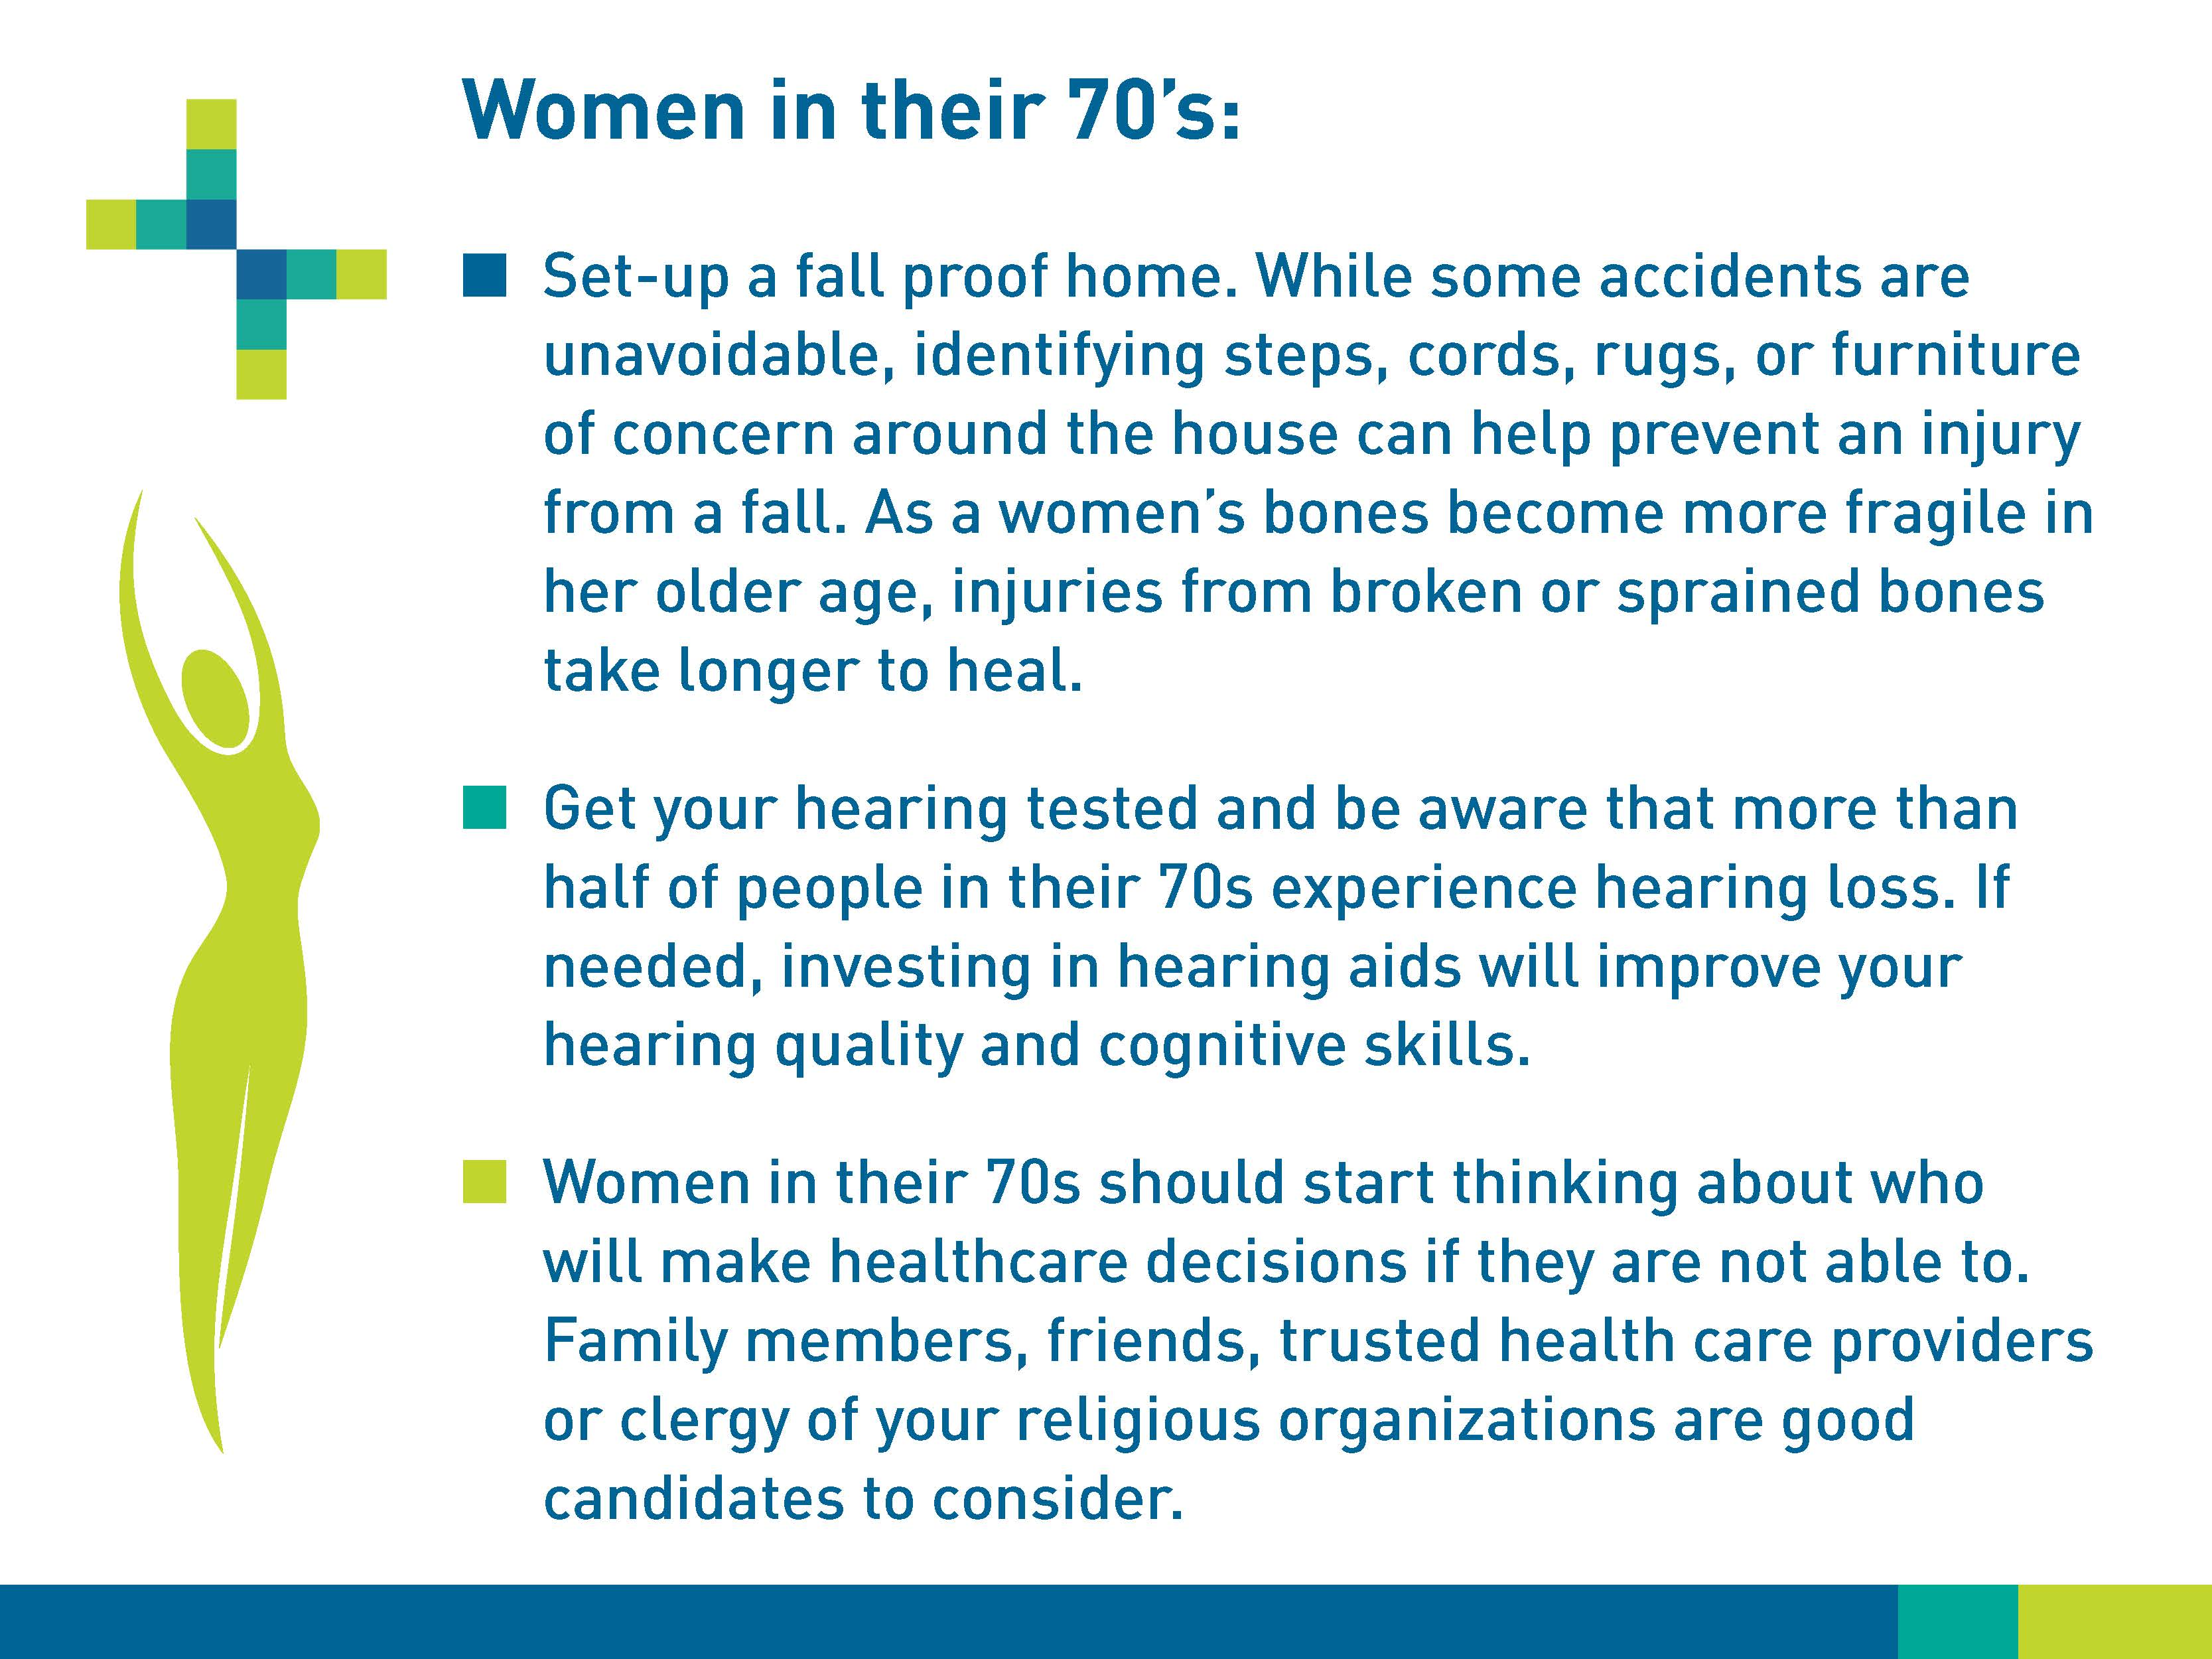 Women in their 70s: Set-up a fall-proof home. While some accidents are unavoidable, identifying steps, cords, rugs, or furniture of concern around the house can help prevent an injury forma  fall. As a woman's bones become more fragile in her older age, injuries from broken or sprained bones take longer to heal. Get your hearing tested and be aware that more than half of people in their 70s experience hearing loss. If needed, investing in hearing aids will improve your hearing quality and cognitive skills. Women in their 70s should start thinking about who will make healthcare decisions if they are not able to. Family members, friends, trusted healthcare providers or clergy of your religious organizations are good candidates to consider.